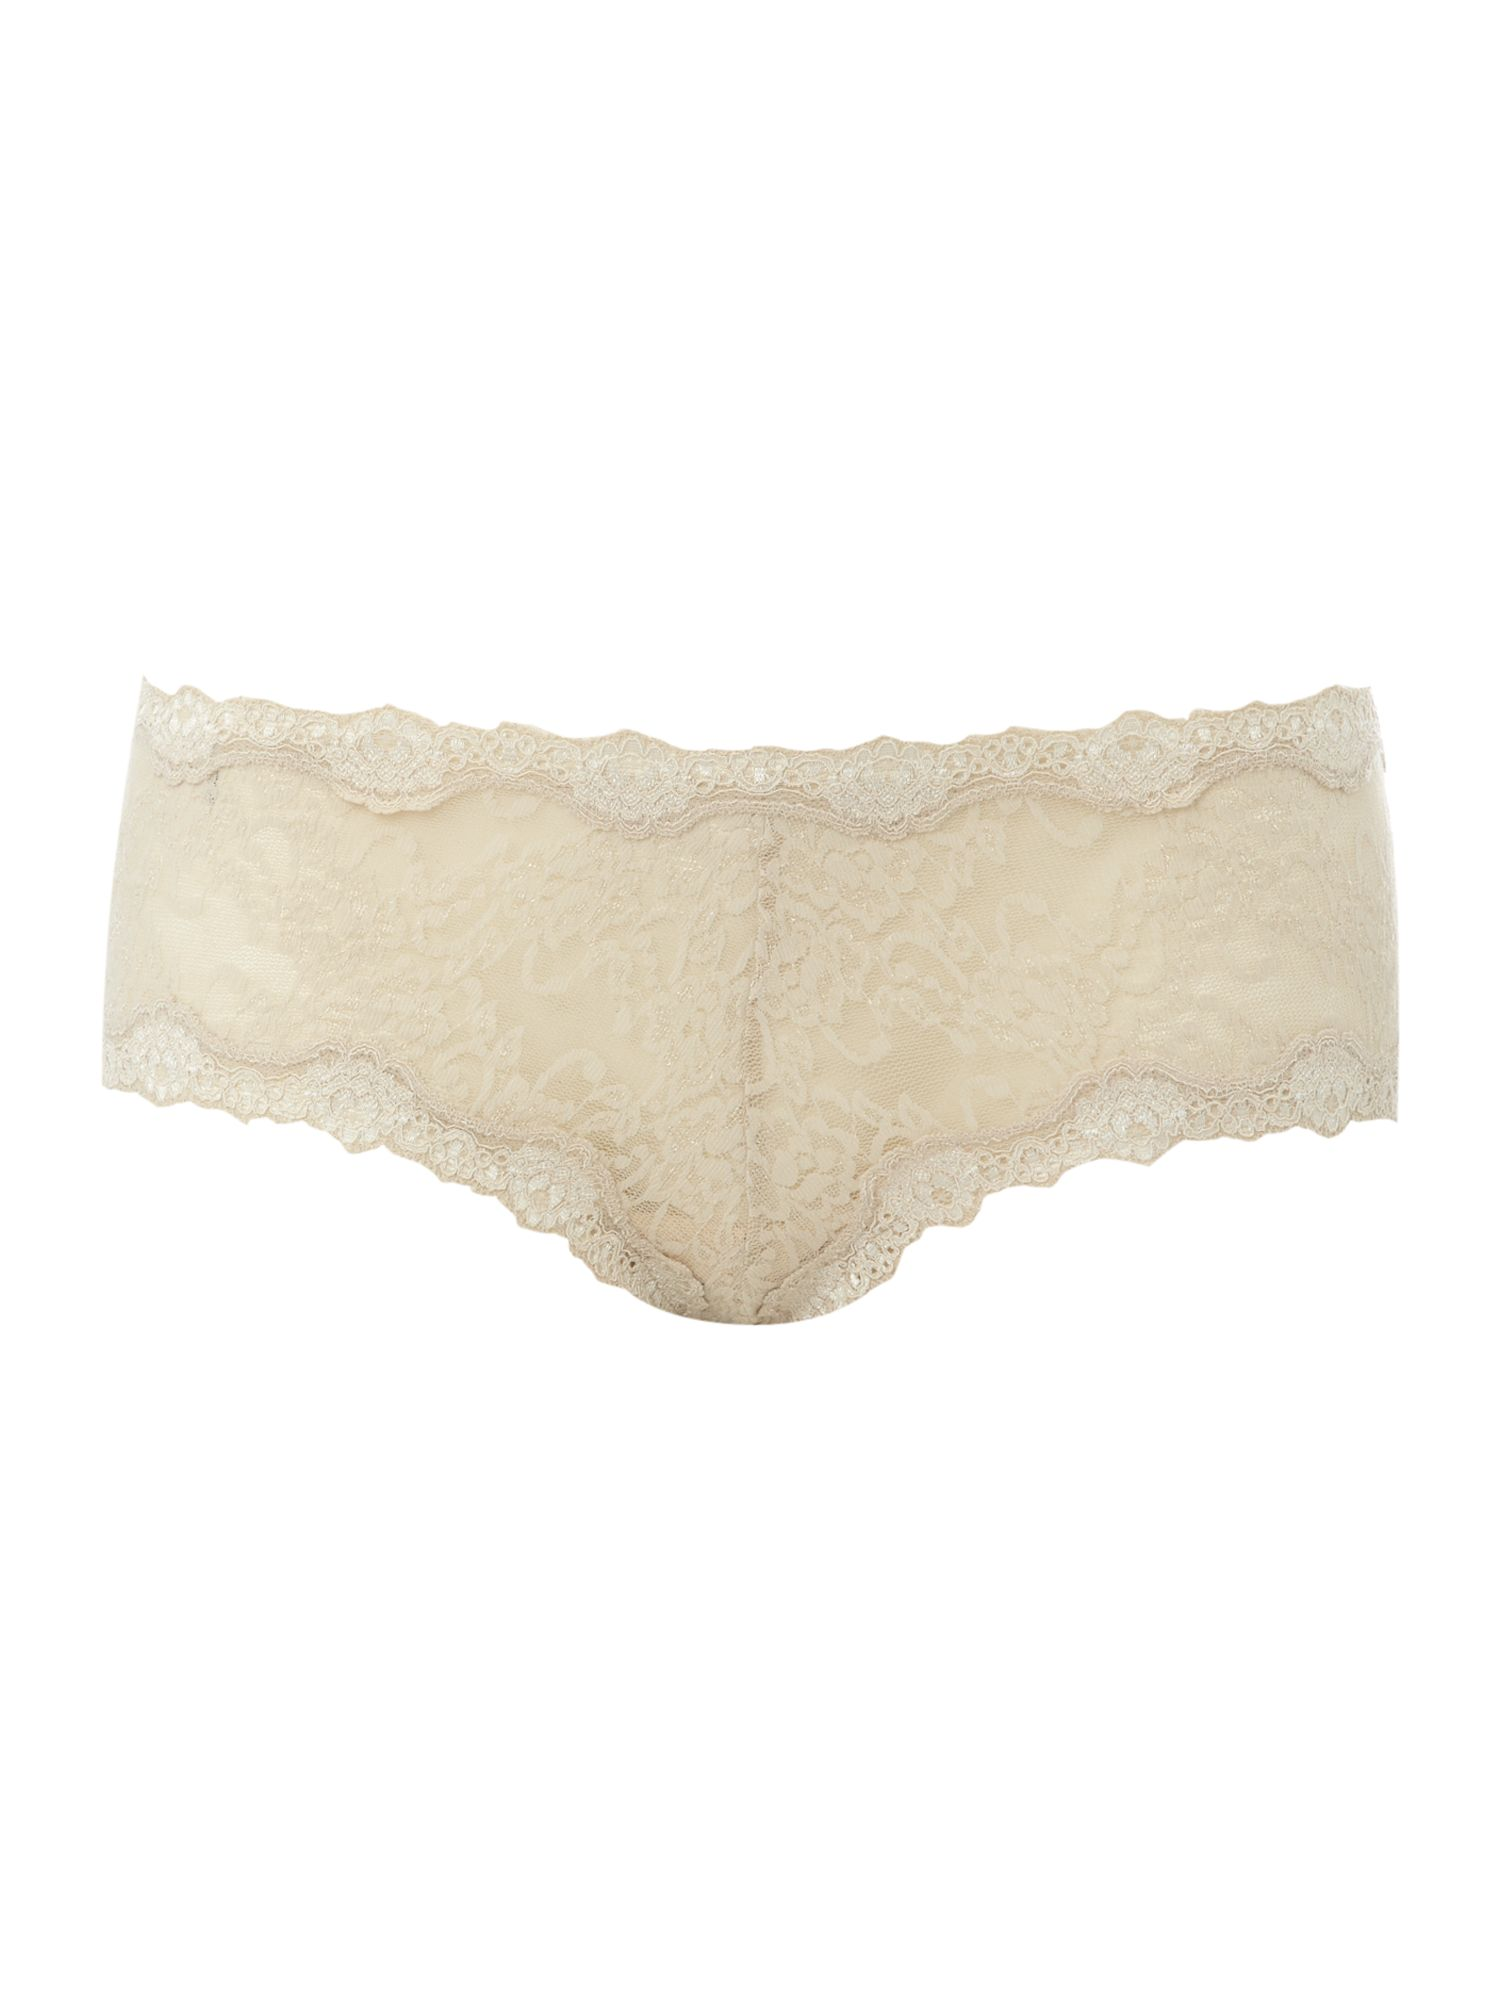 Scalloped edge knicker